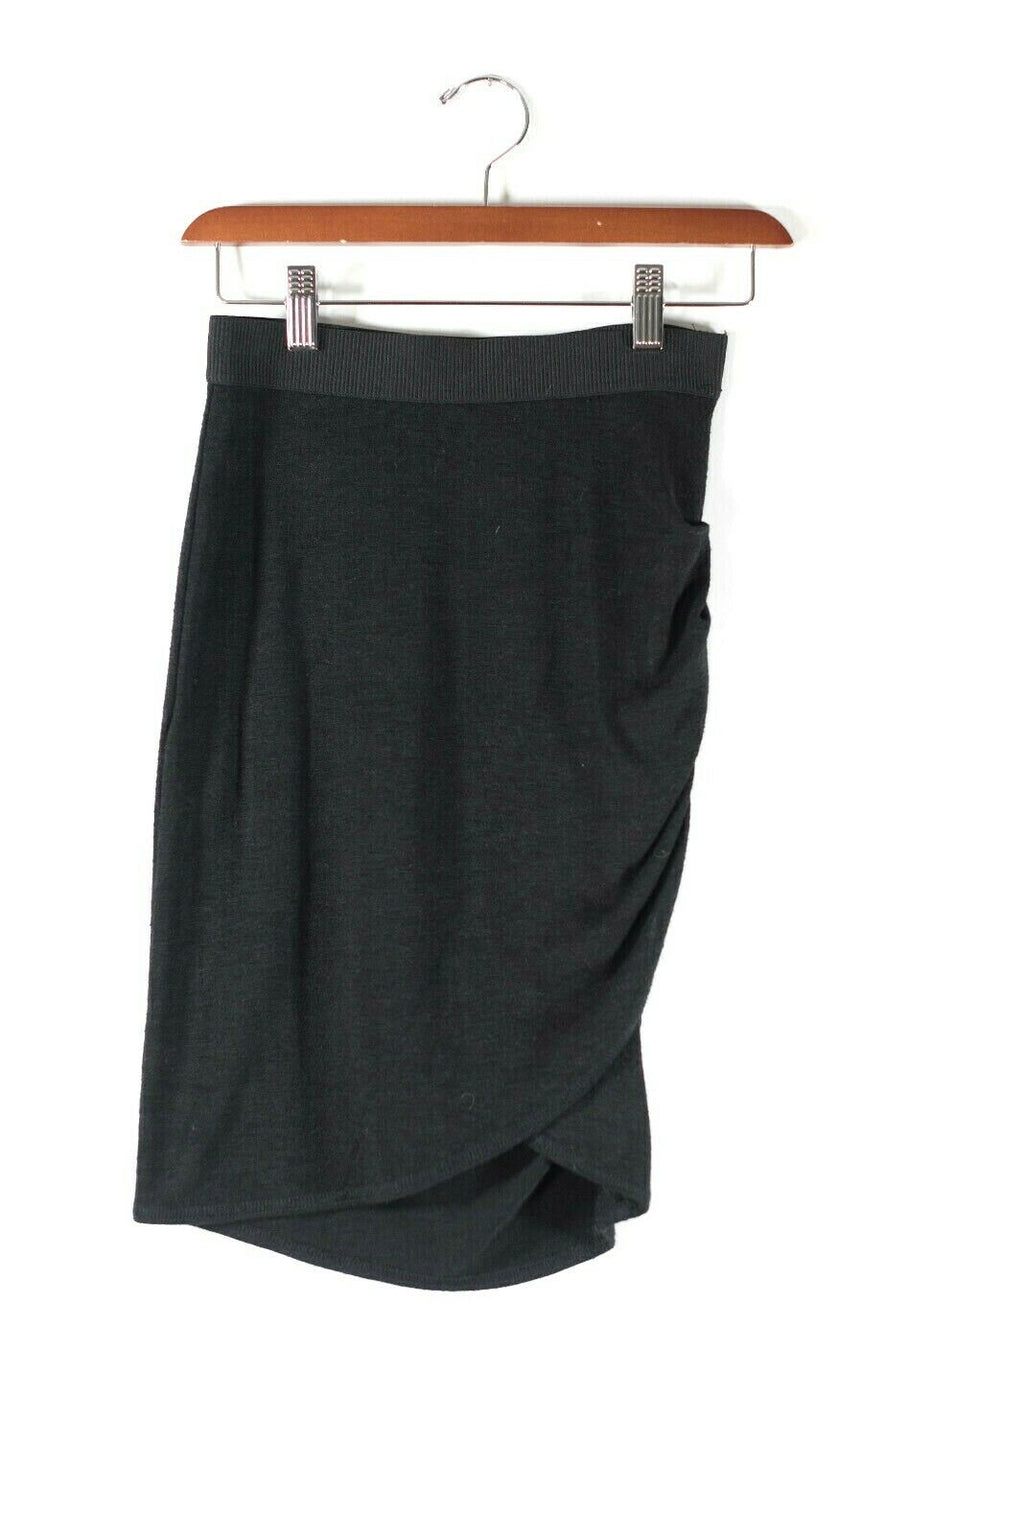 Aritzia Wilfred Free Womens XS Black Skirt Pencil Ruched Knit Elastic Waist Mini